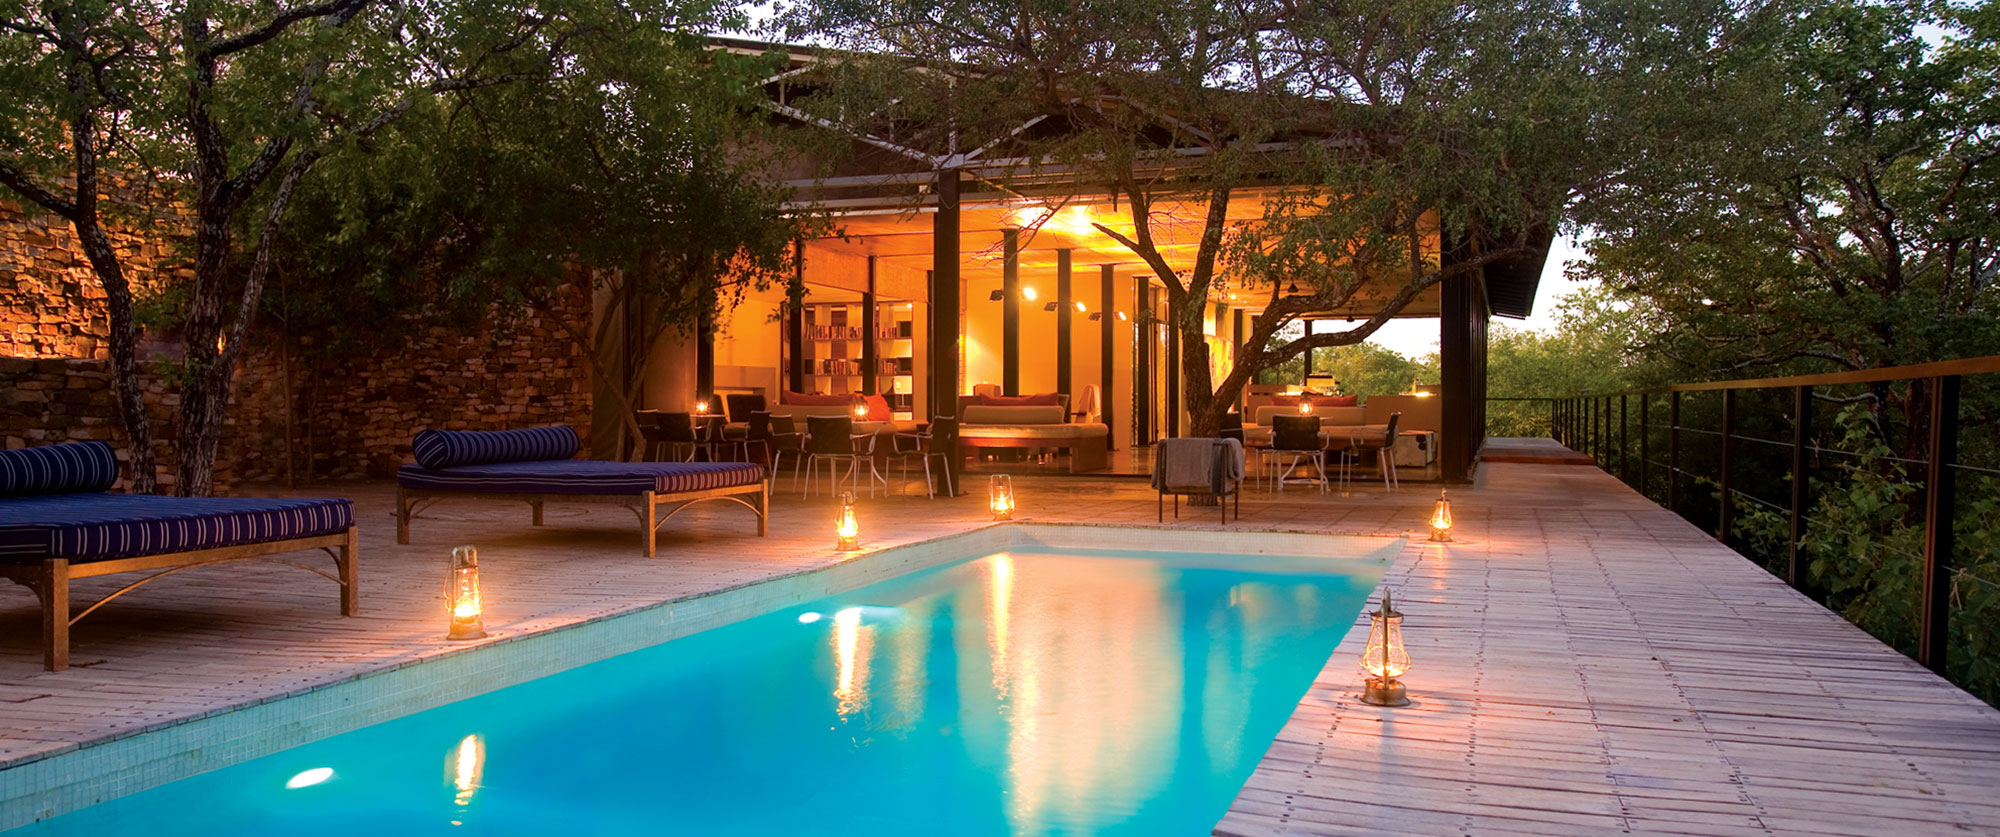 Luxury Safari Kruger National Park - The Outpost Luxury Safari Lodge